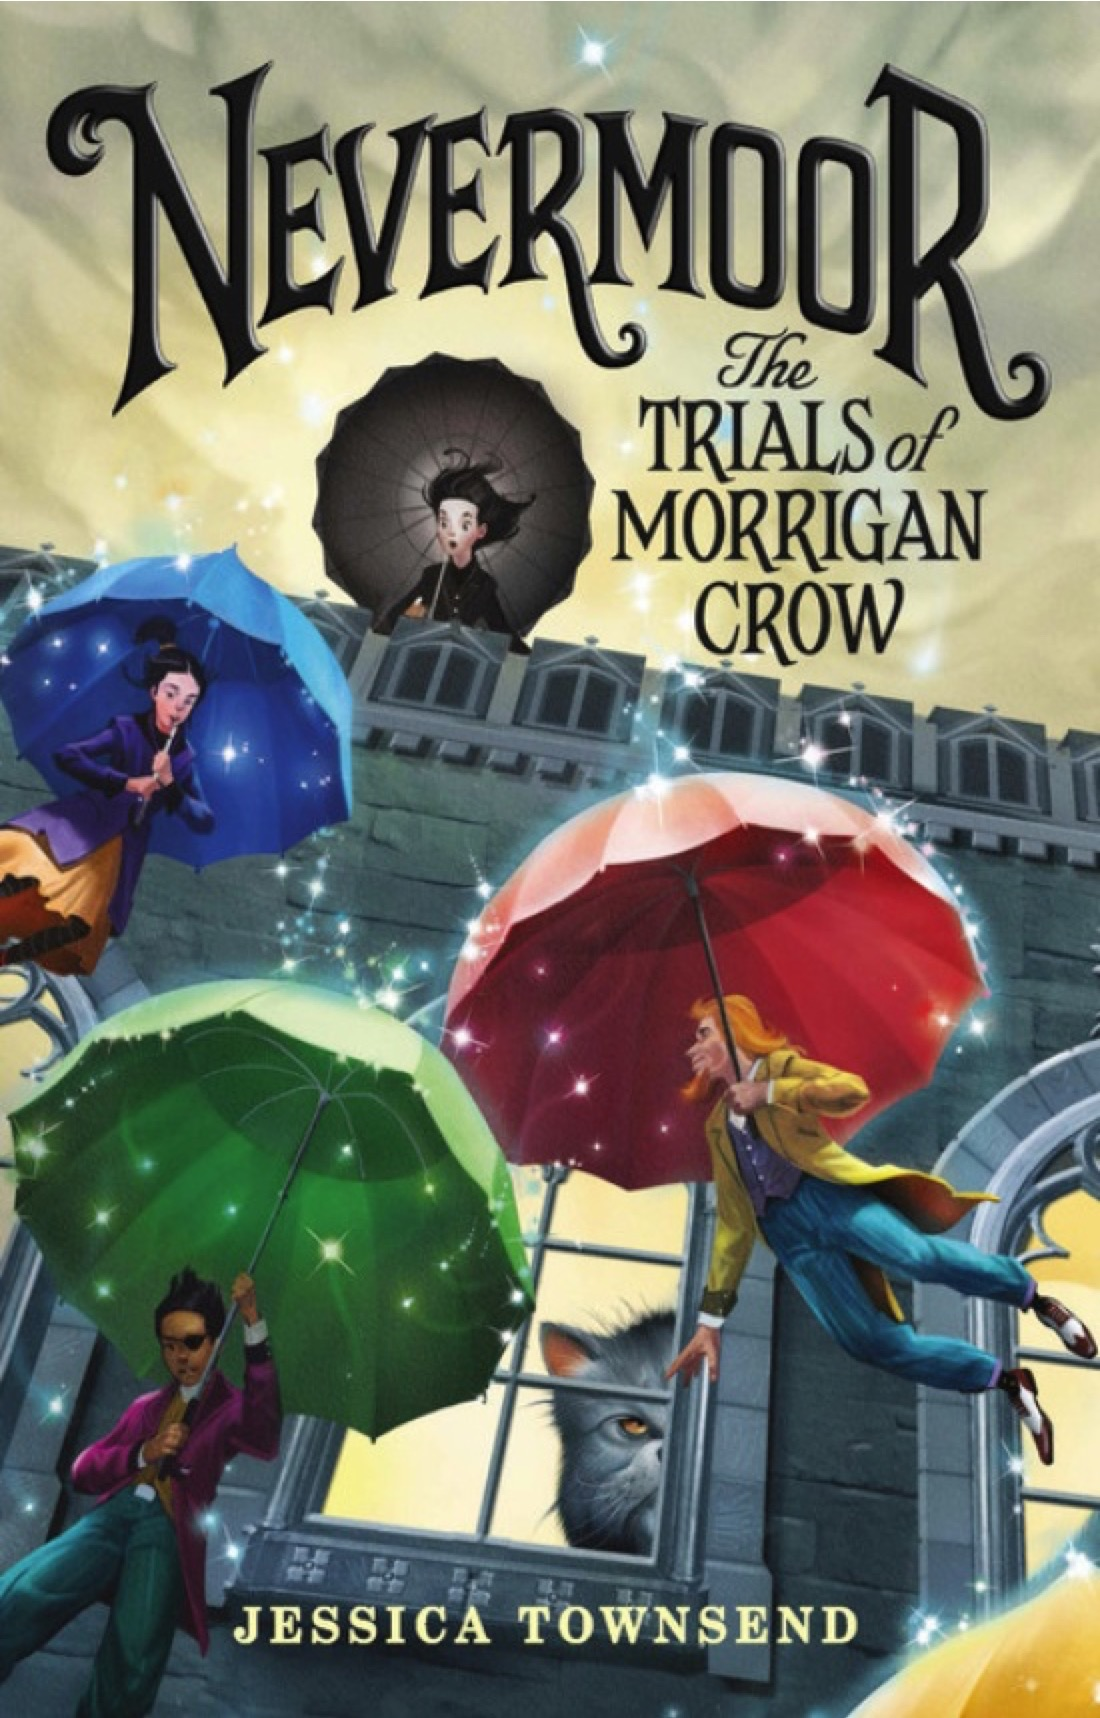 Image result for nevermoor